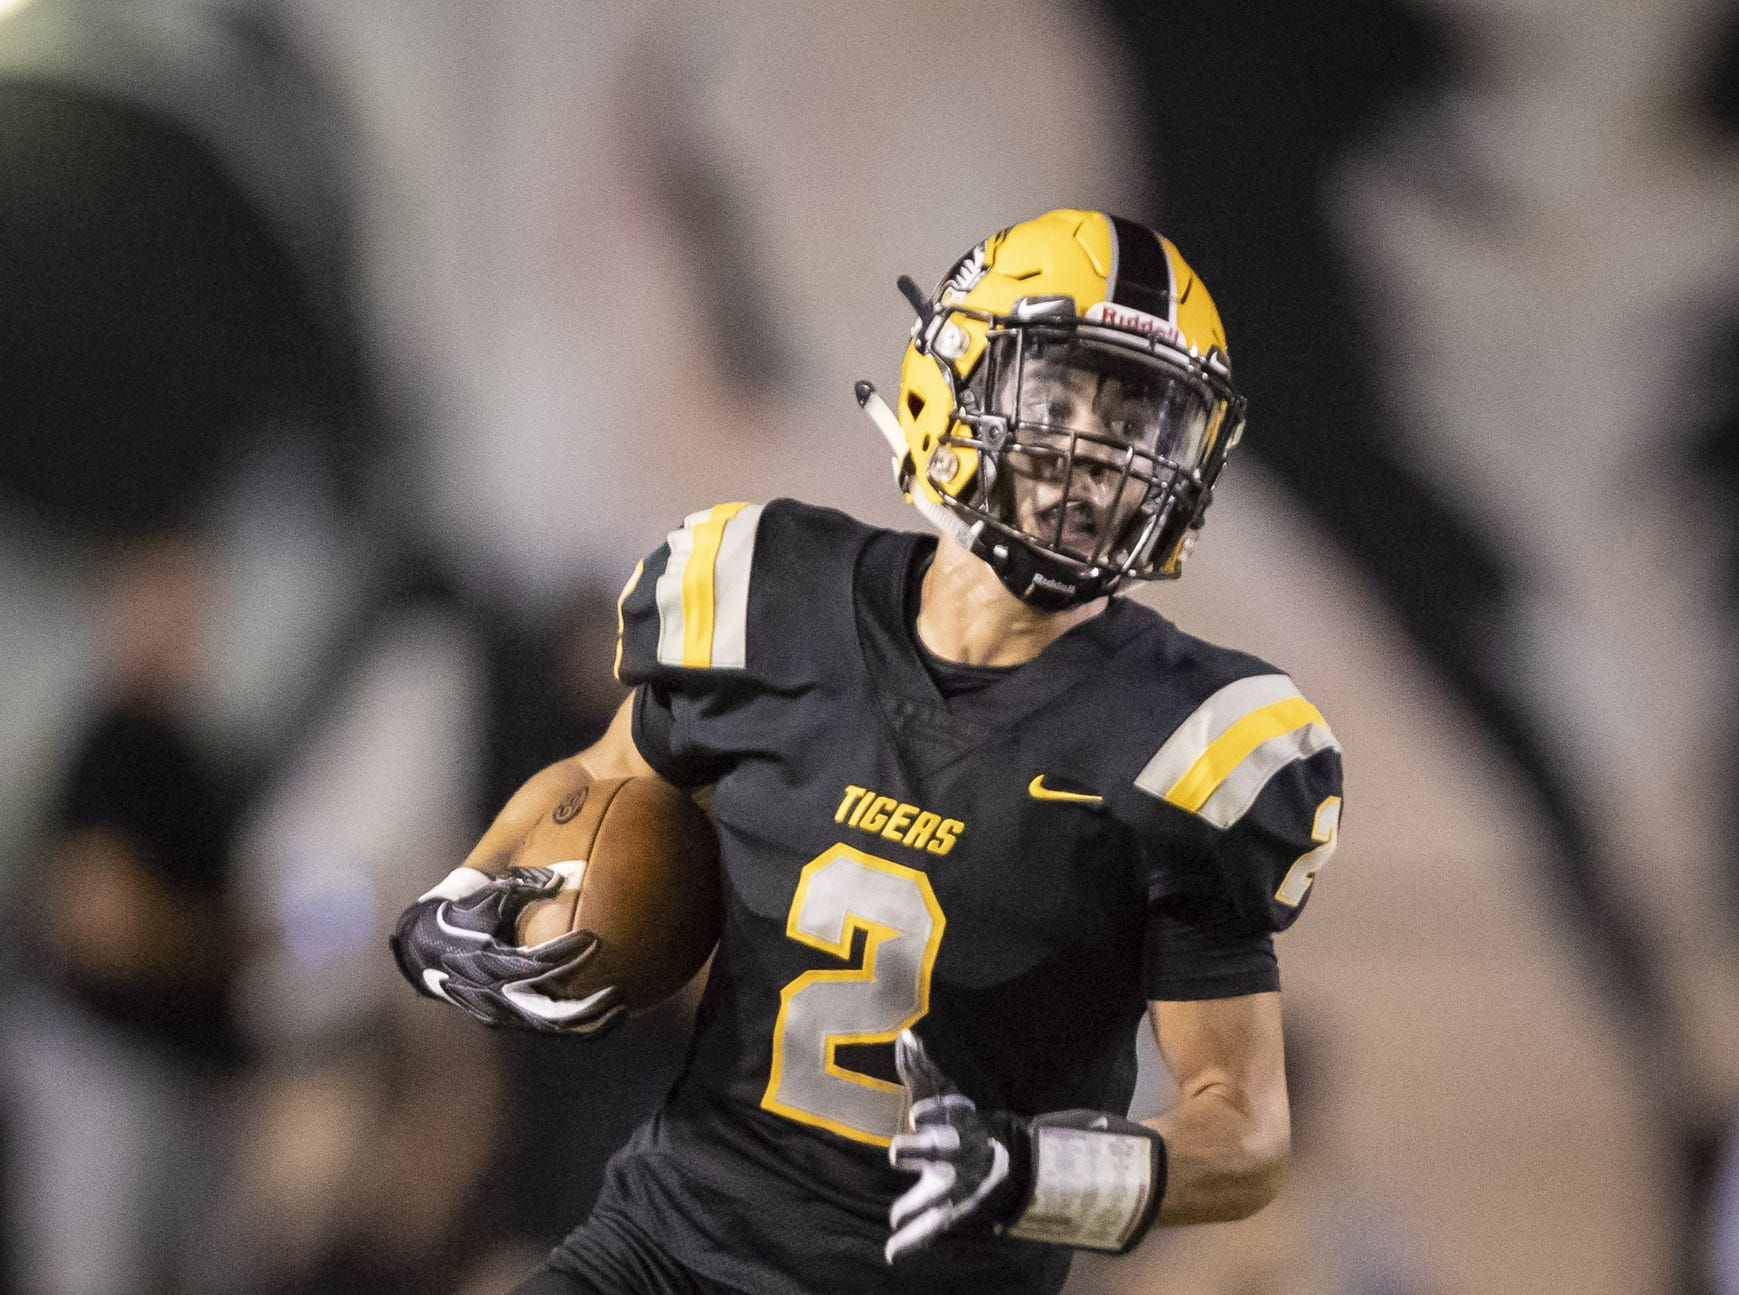 Junior wide receiver Tyler Hironaka (2) of the Gilbert Tigers runs the ball against the Notre Dame Prep Saints at Gilbert High School on Friday, August 31, 2018 in Gilbert, Arizona.